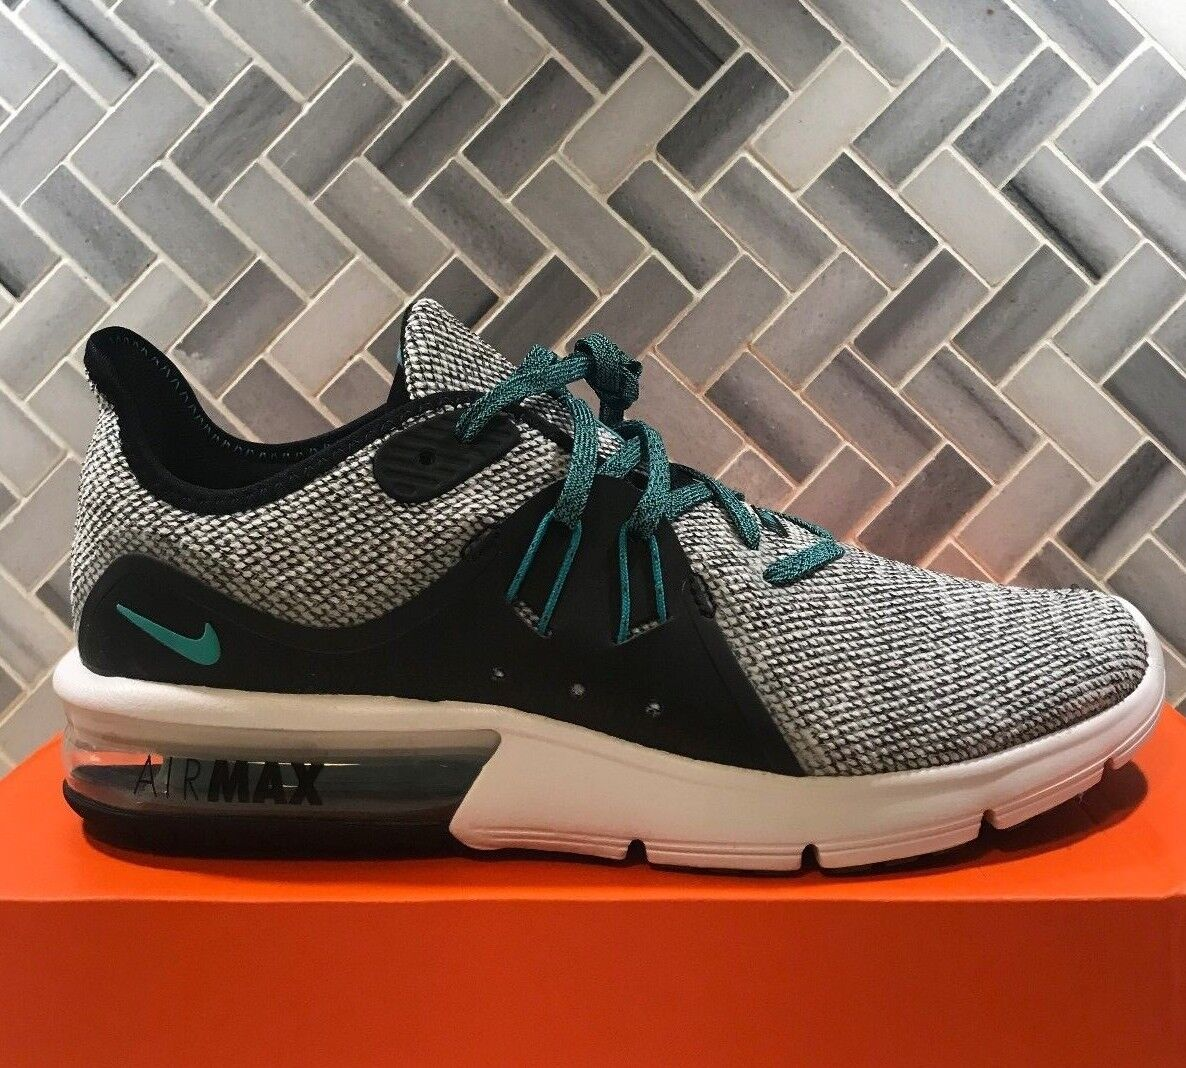 Nike Air Max Sequent 3 FK Hyper Jade Black Flyknit 921694 100 Sz 8.5/7.5 IN HAND